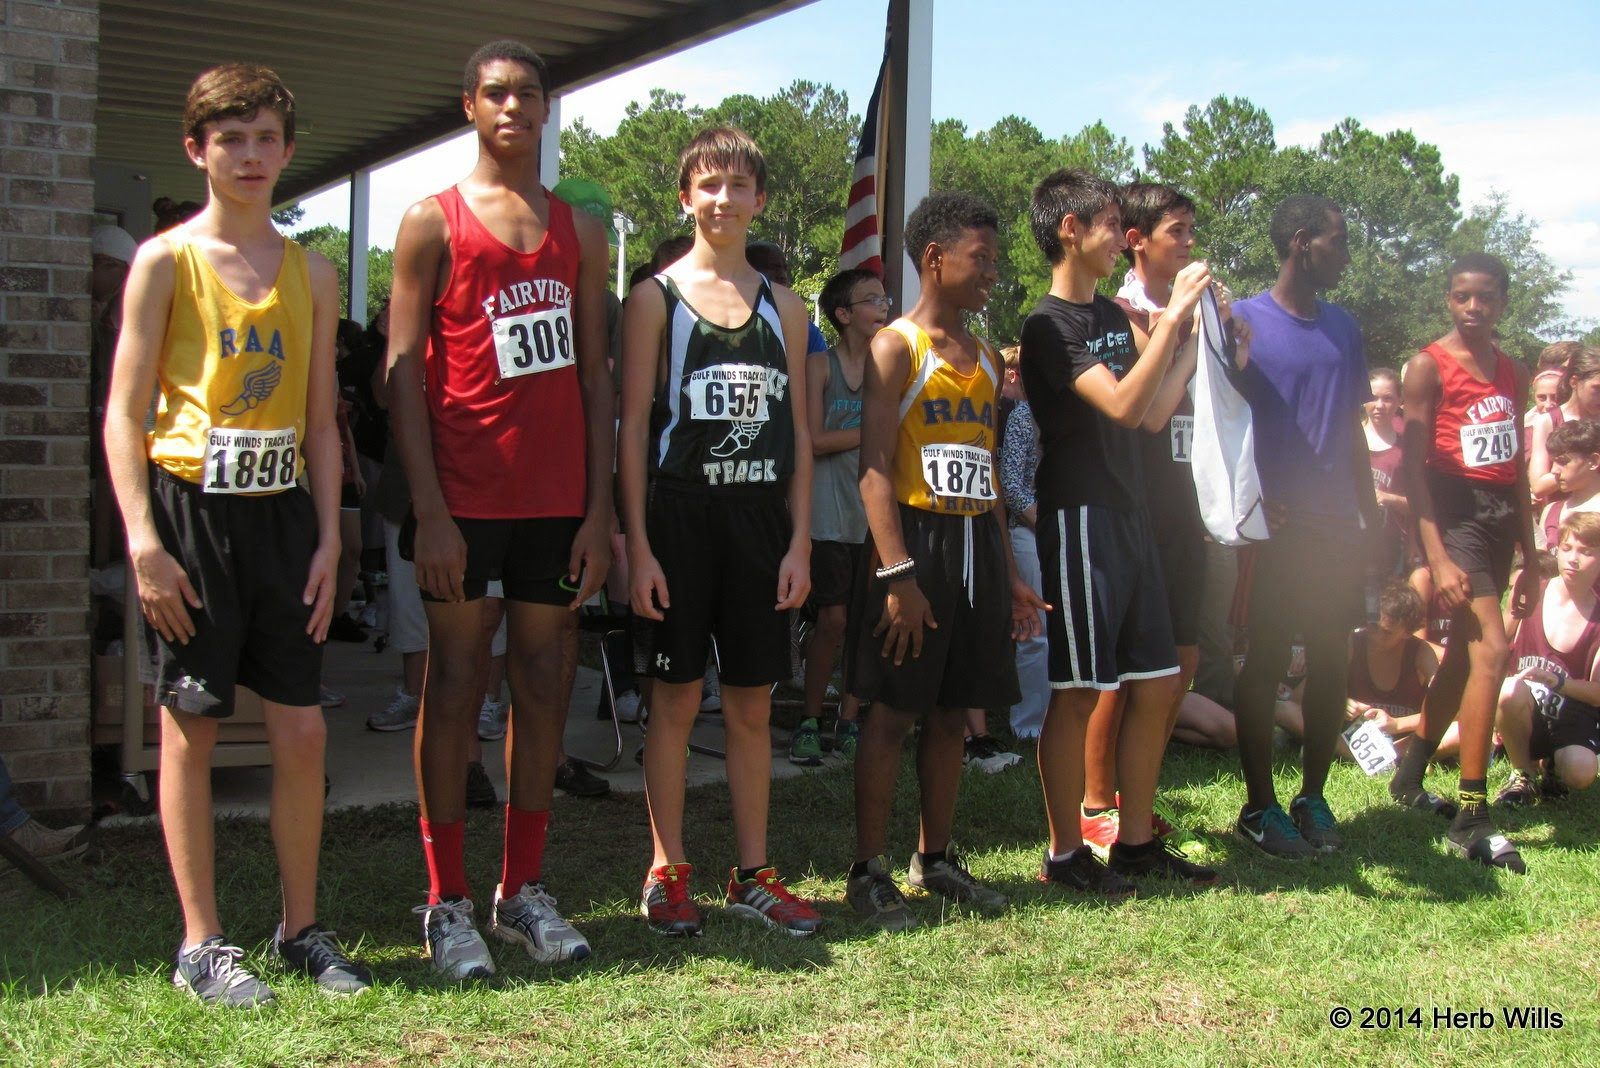 Top boys at the Everhart Invitational